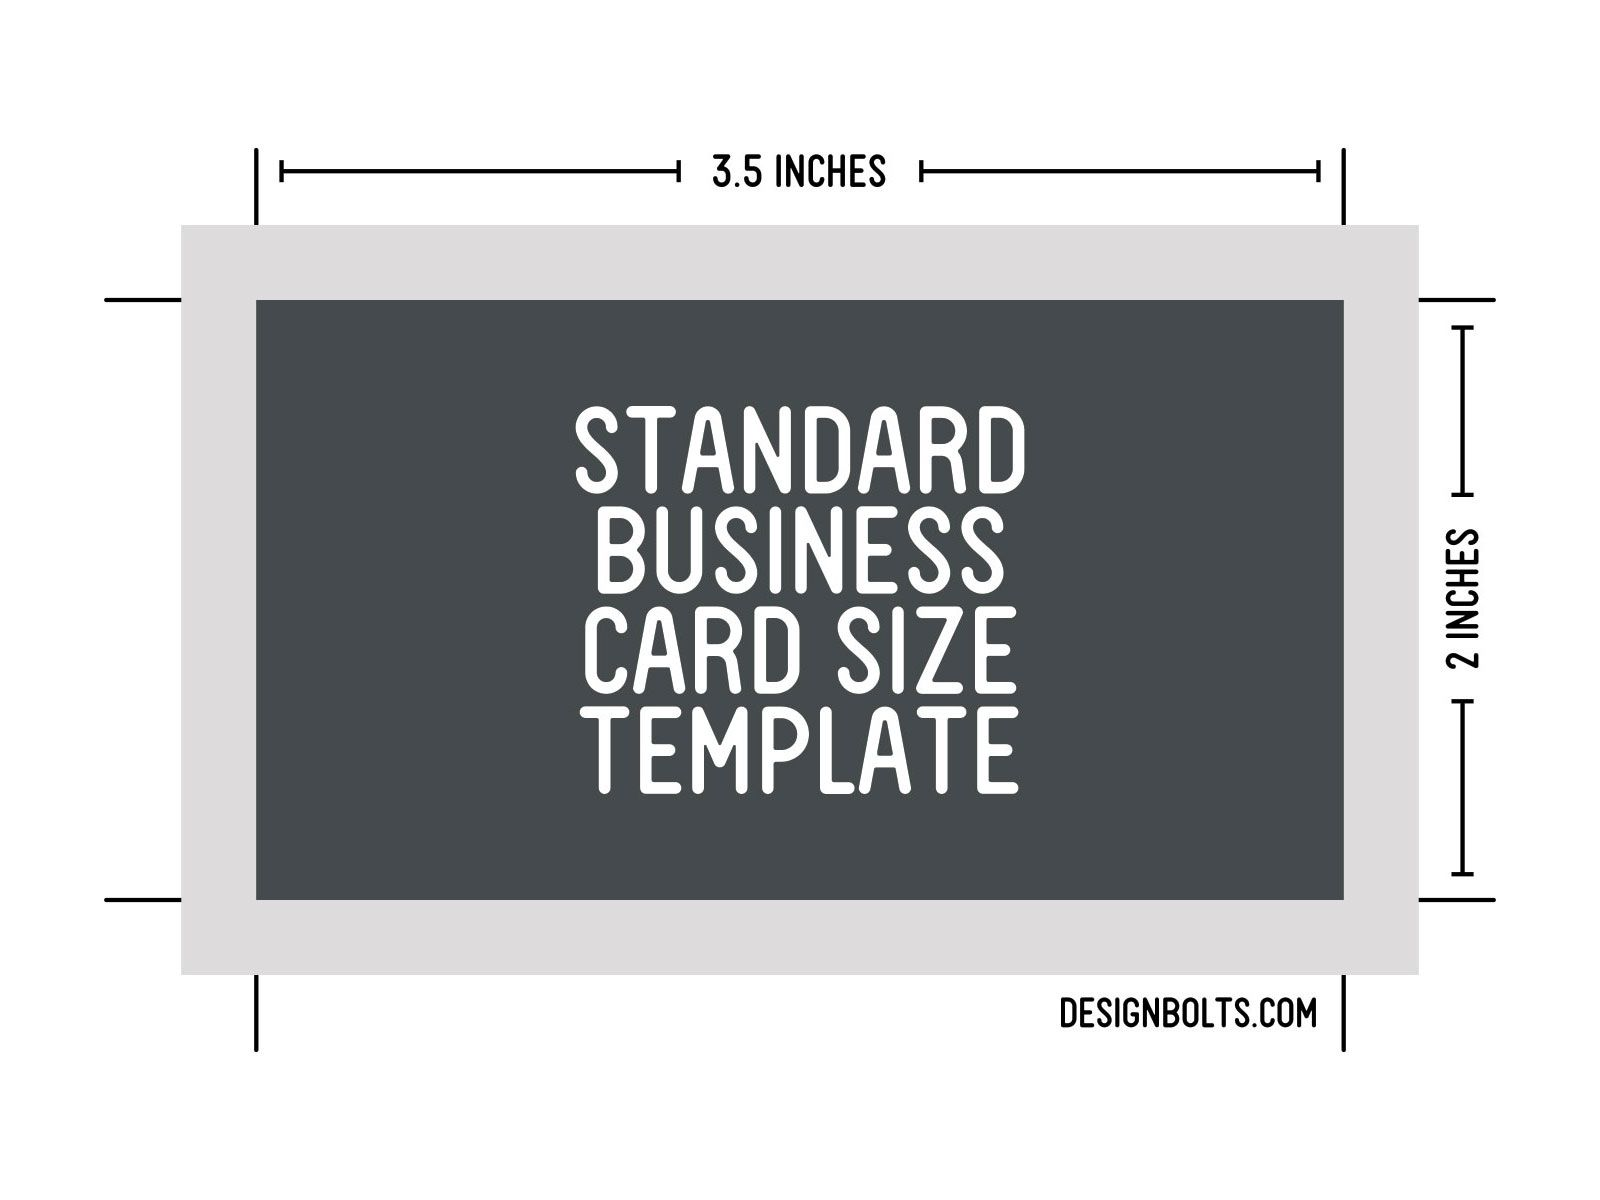 standard business card size - Resumess.memberpro.co